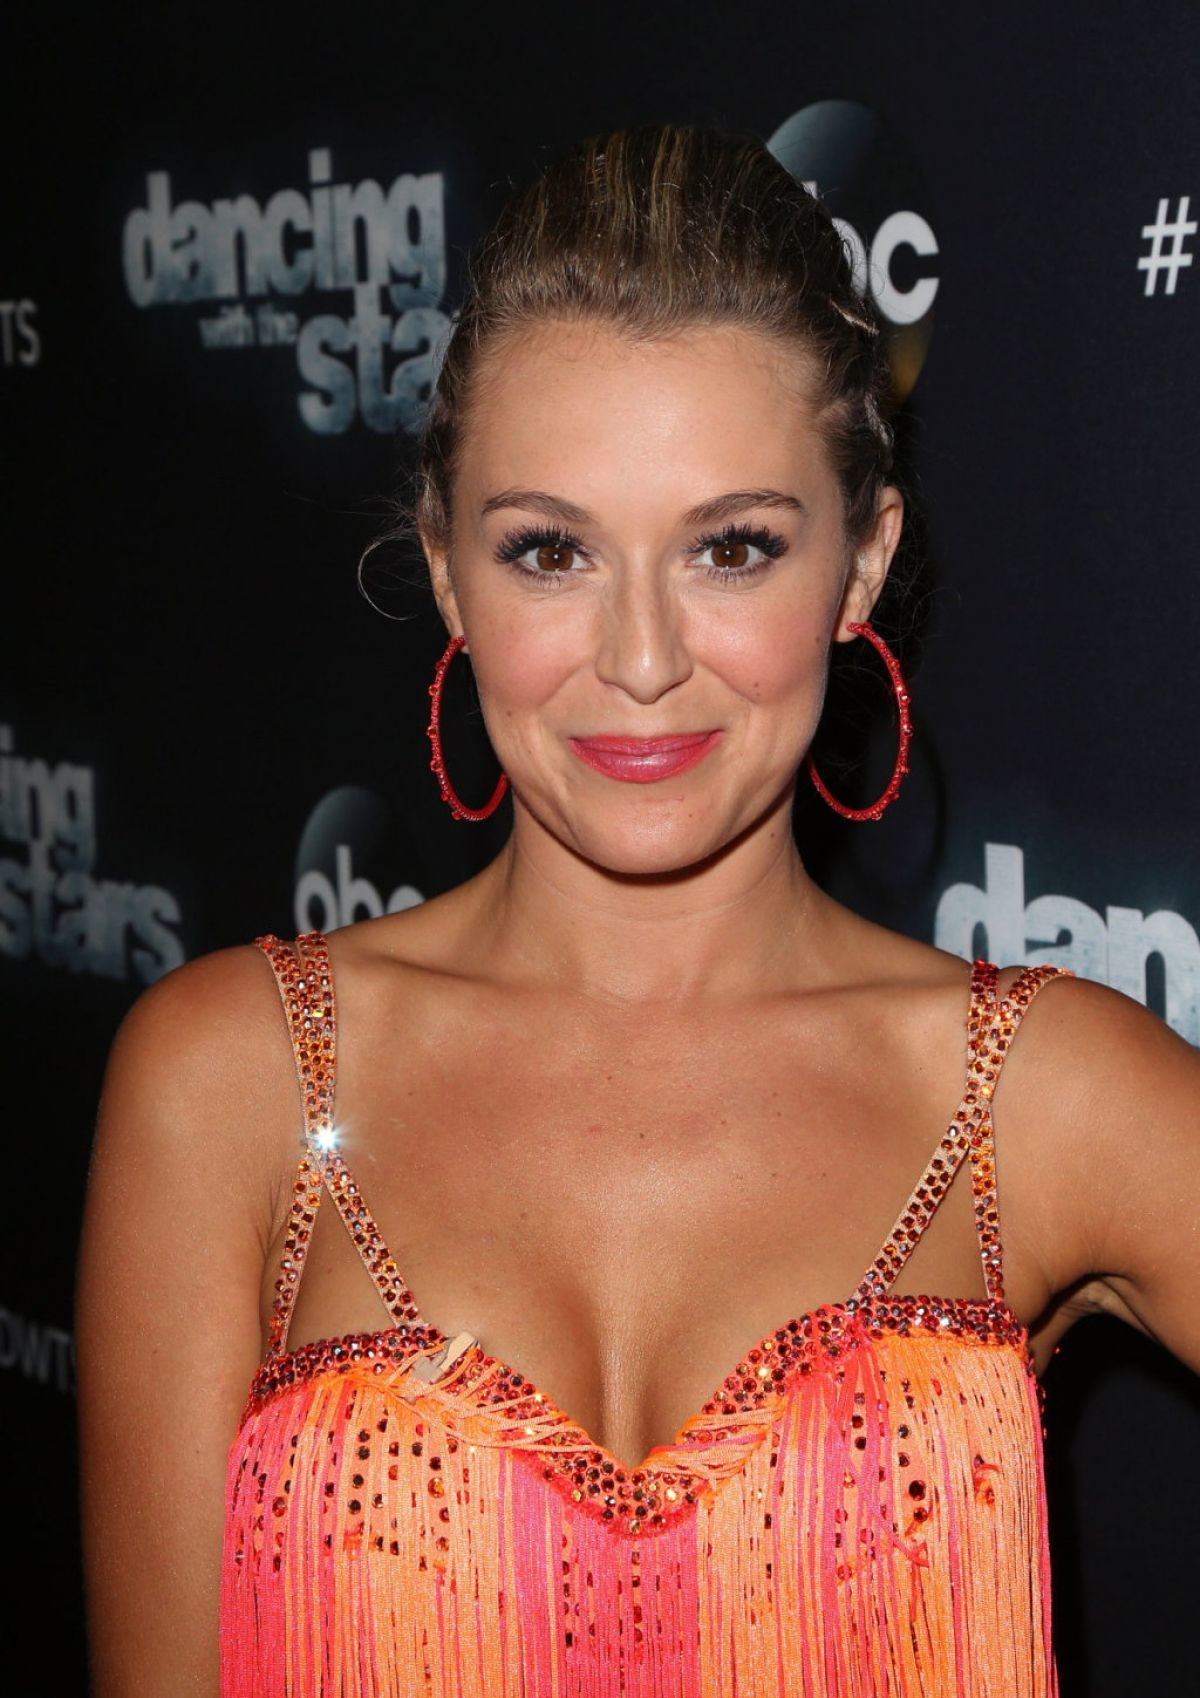 alexa vega at dancing with the stars photo op at cbs studios in los angeles 11 02 1205 hawtcelebs. Black Bedroom Furniture Sets. Home Design Ideas